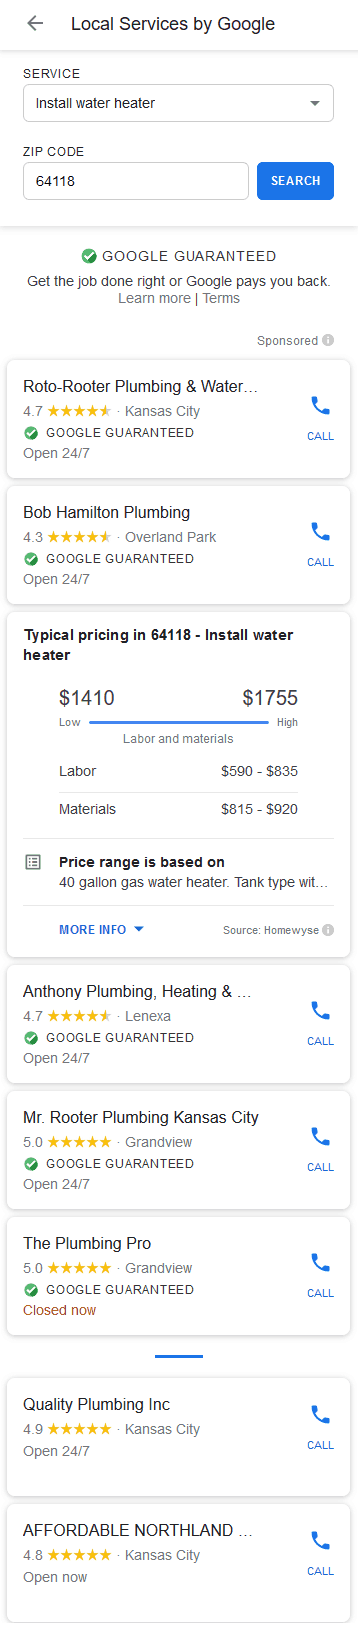 Local Services ad unit with water heater install price range